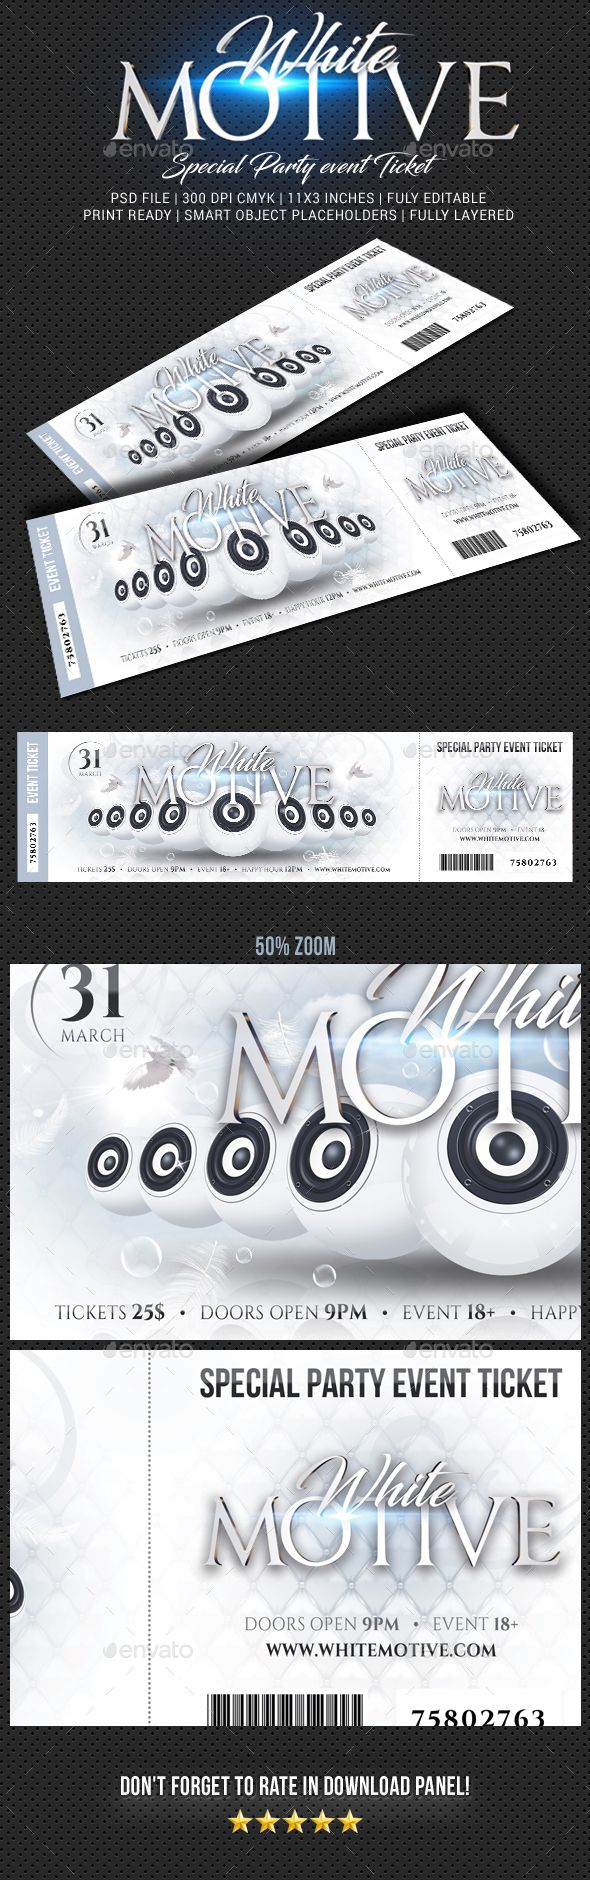 Special Party Event Ticket V12